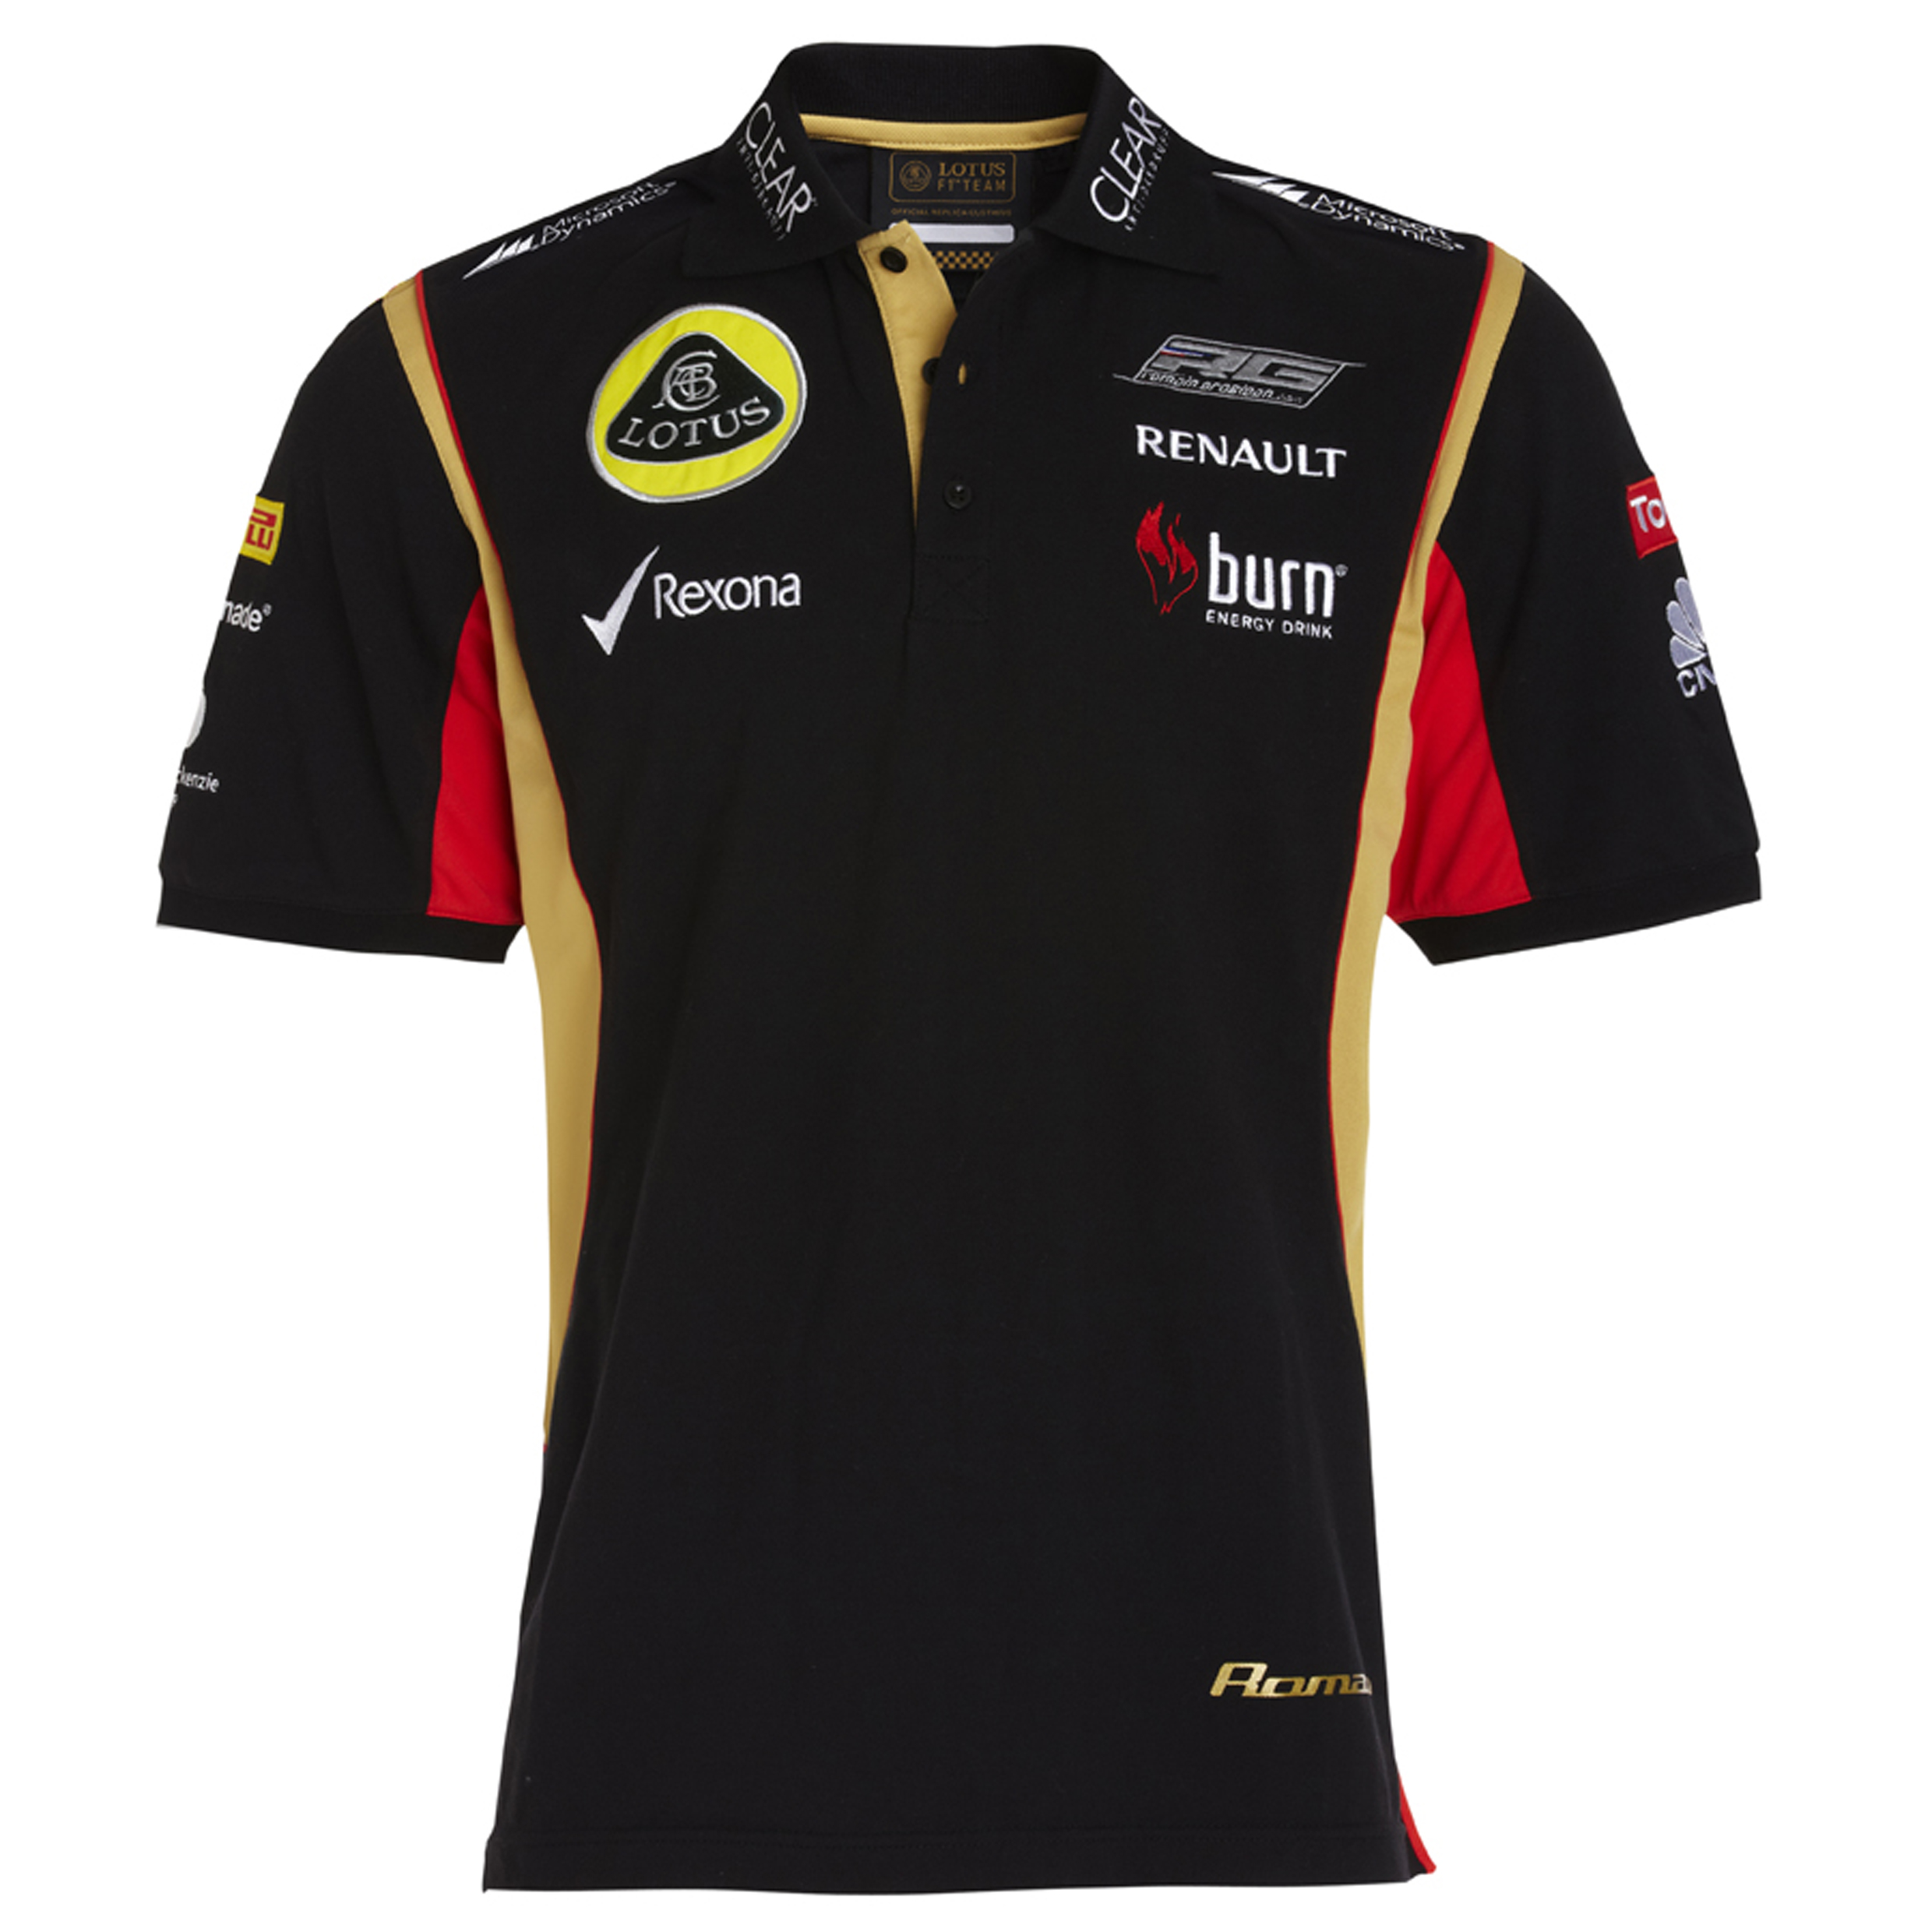 Lotus F1 Team 2013 F1 Mens Replica Romain Polo